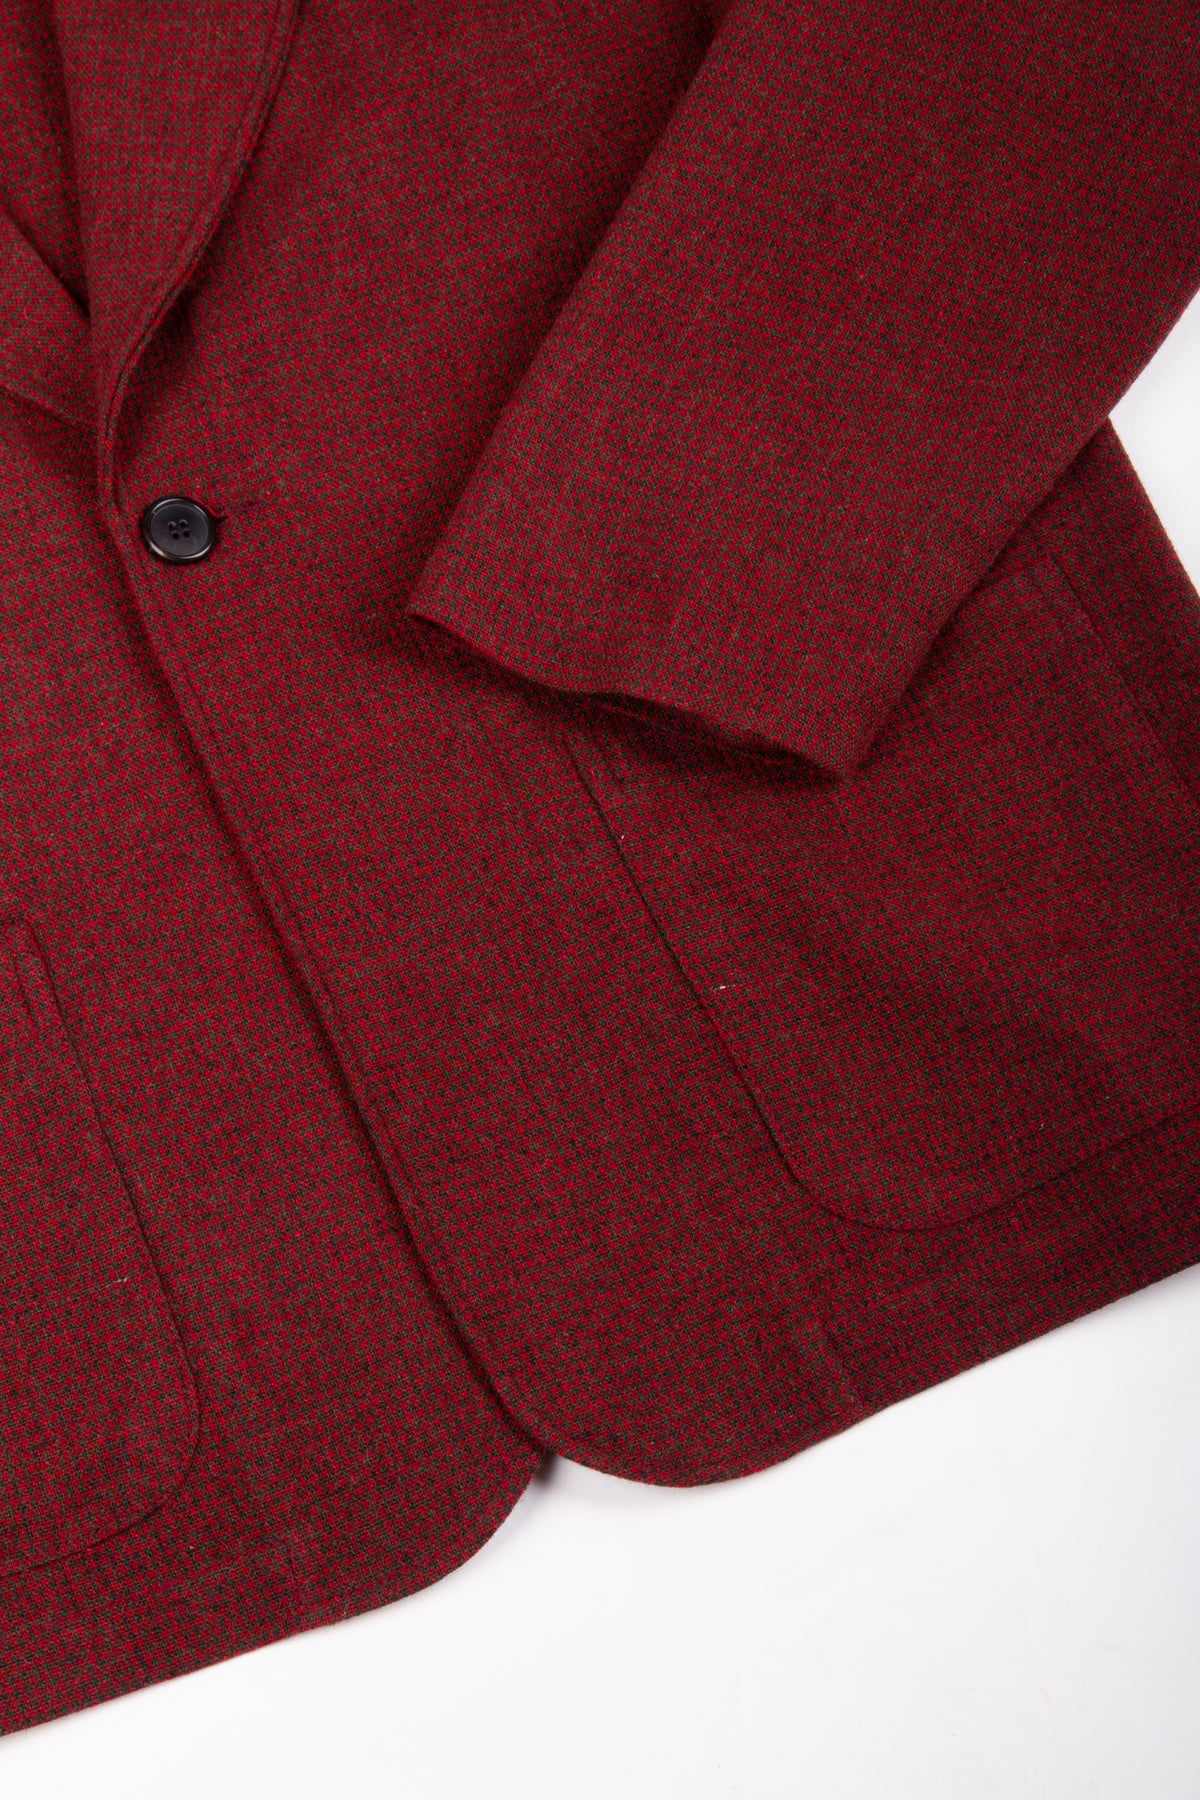 Mod Jacket Chilli Houndstooth | CHECKS DOWNTOWN